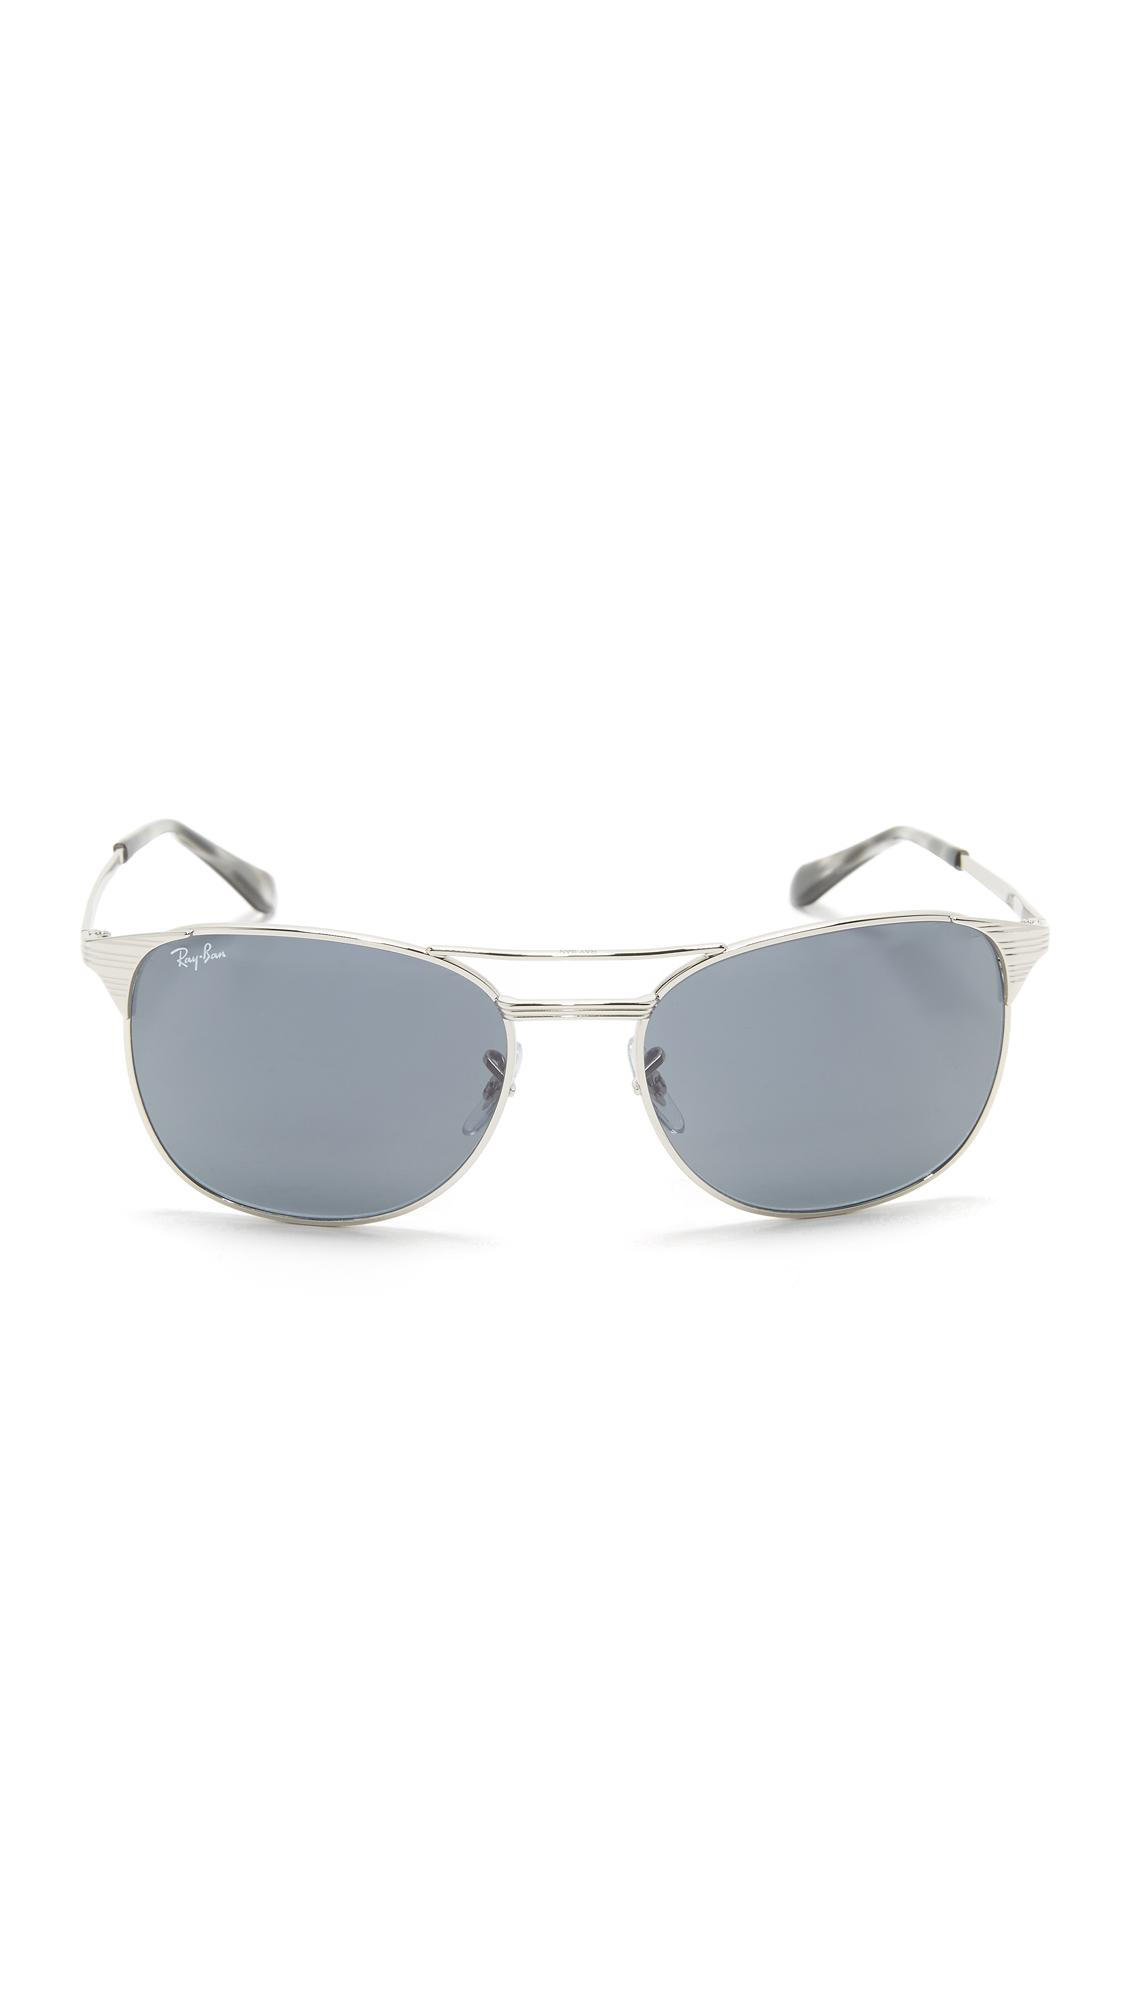 Ray-Ban Etched Retro Aviator Sunglasses in Shiny Silver/Blue (Blue)